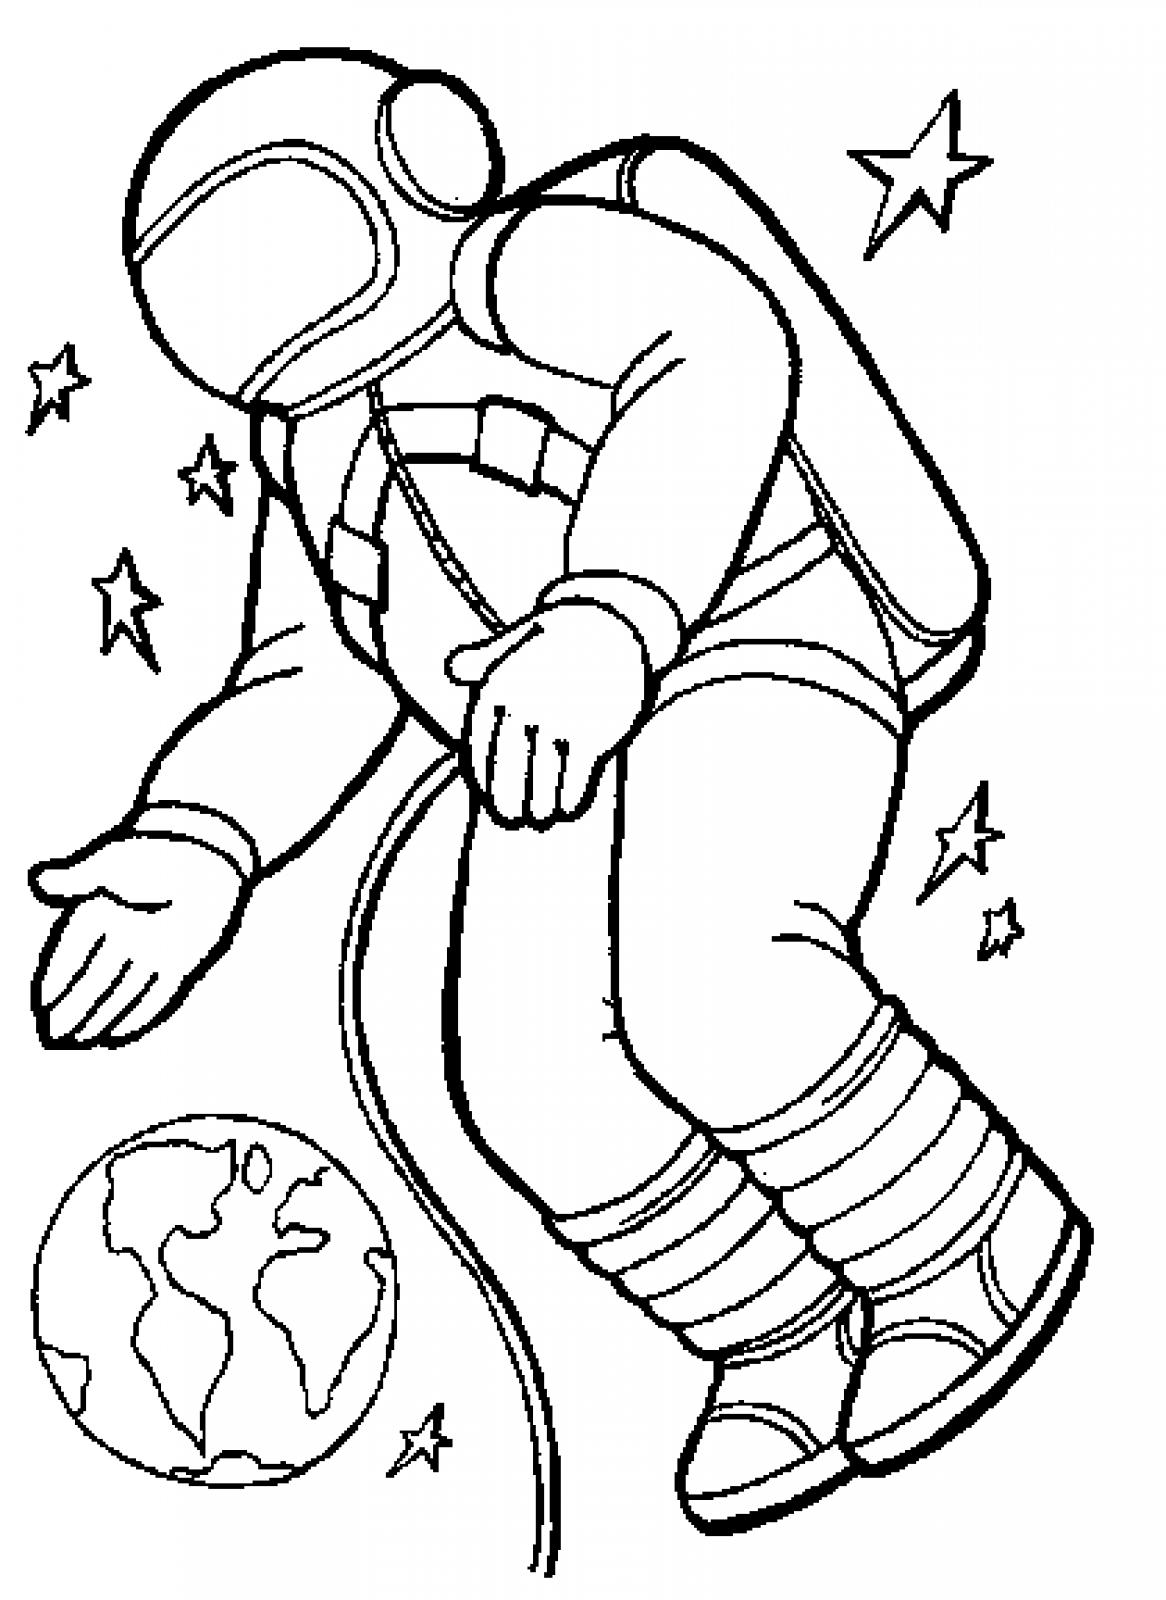 coloring pages on space - photo#11